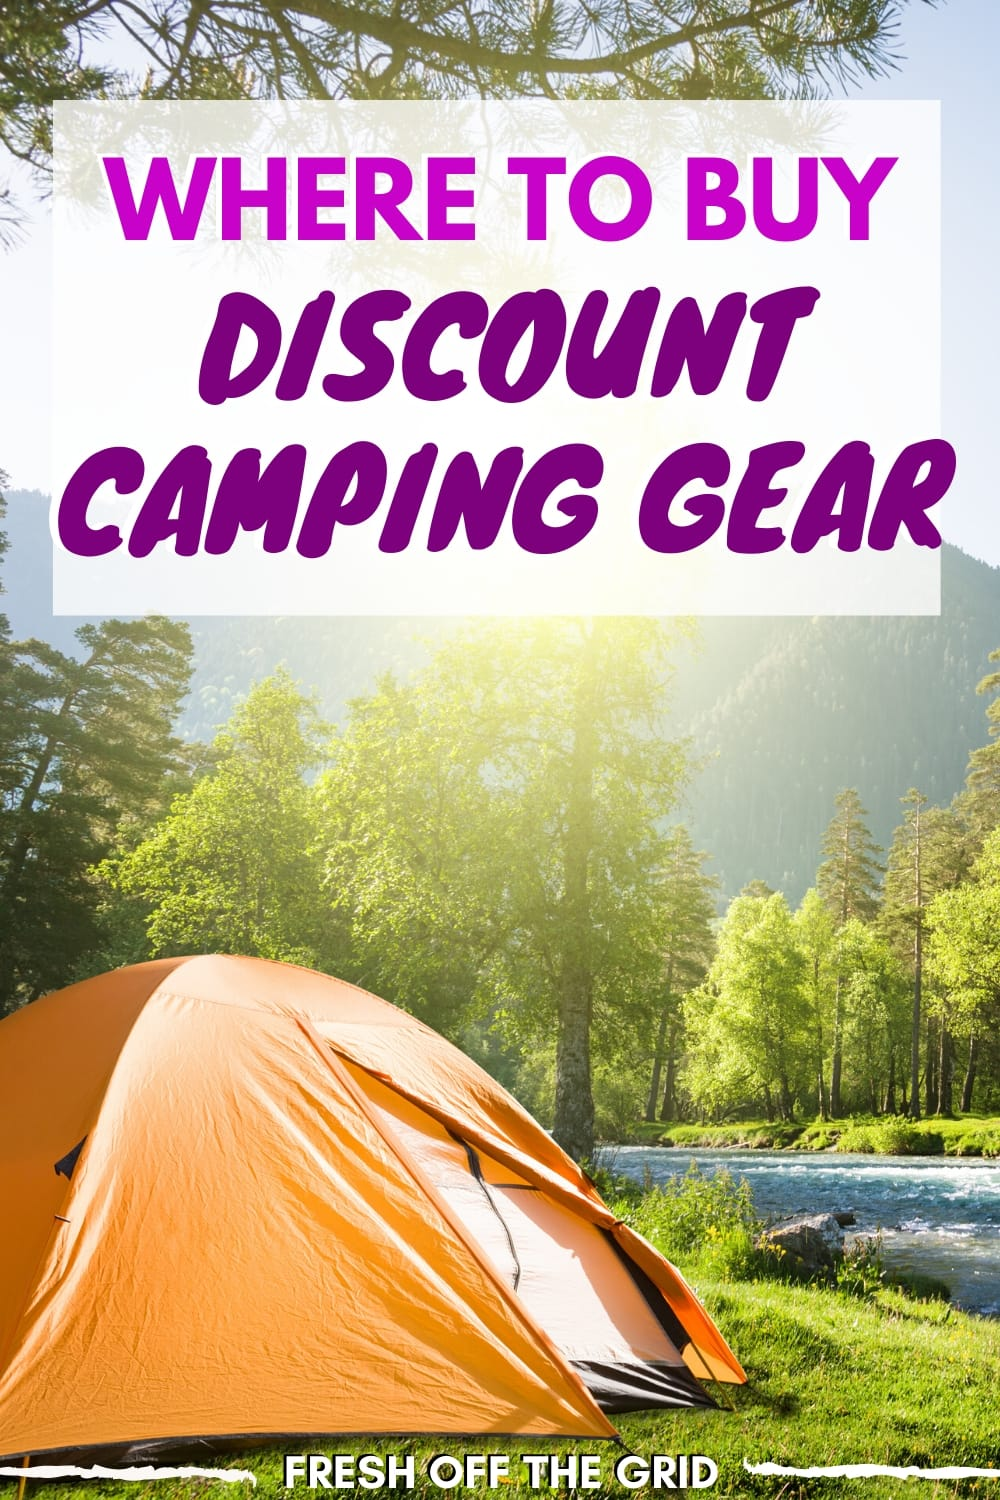 Upgrading your camping equipment this season? Be sure to check out these discount camping gear sites to score some great deals on outdoor gear. We've even included some great coupons and discount codes to save you some serious cash. via @freshoffthegrid